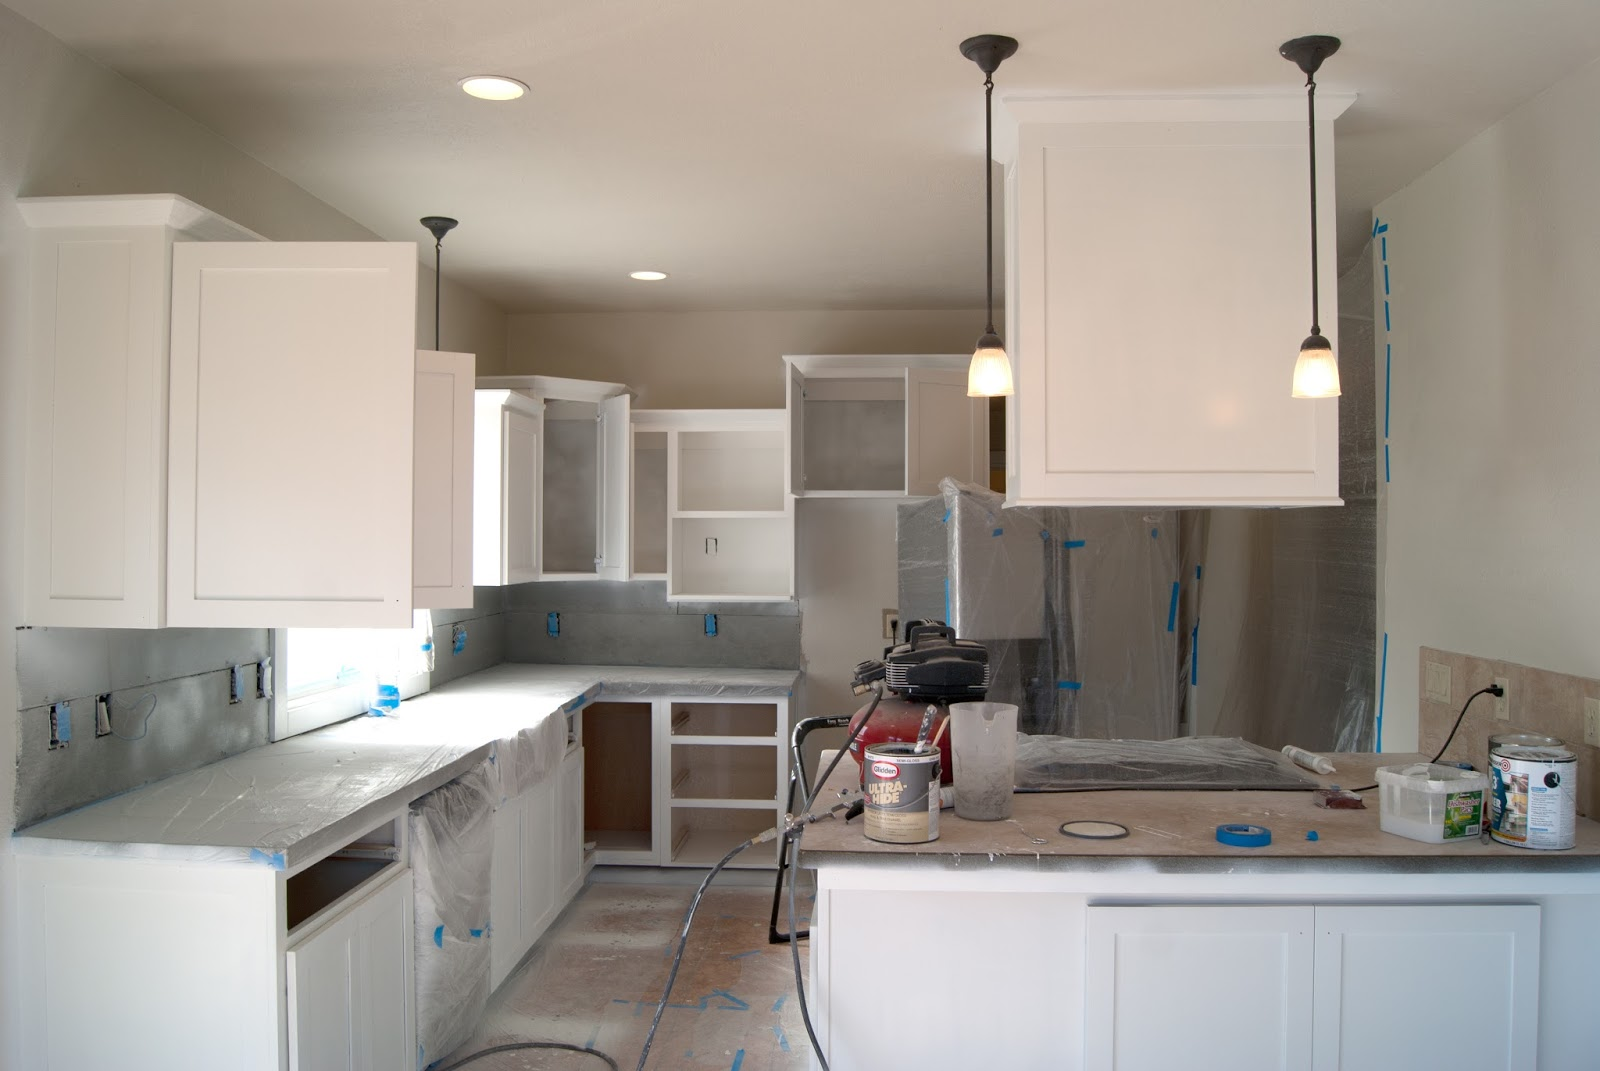 Painting the Kitchen Cabinets - Primer + Paint | Averie ...